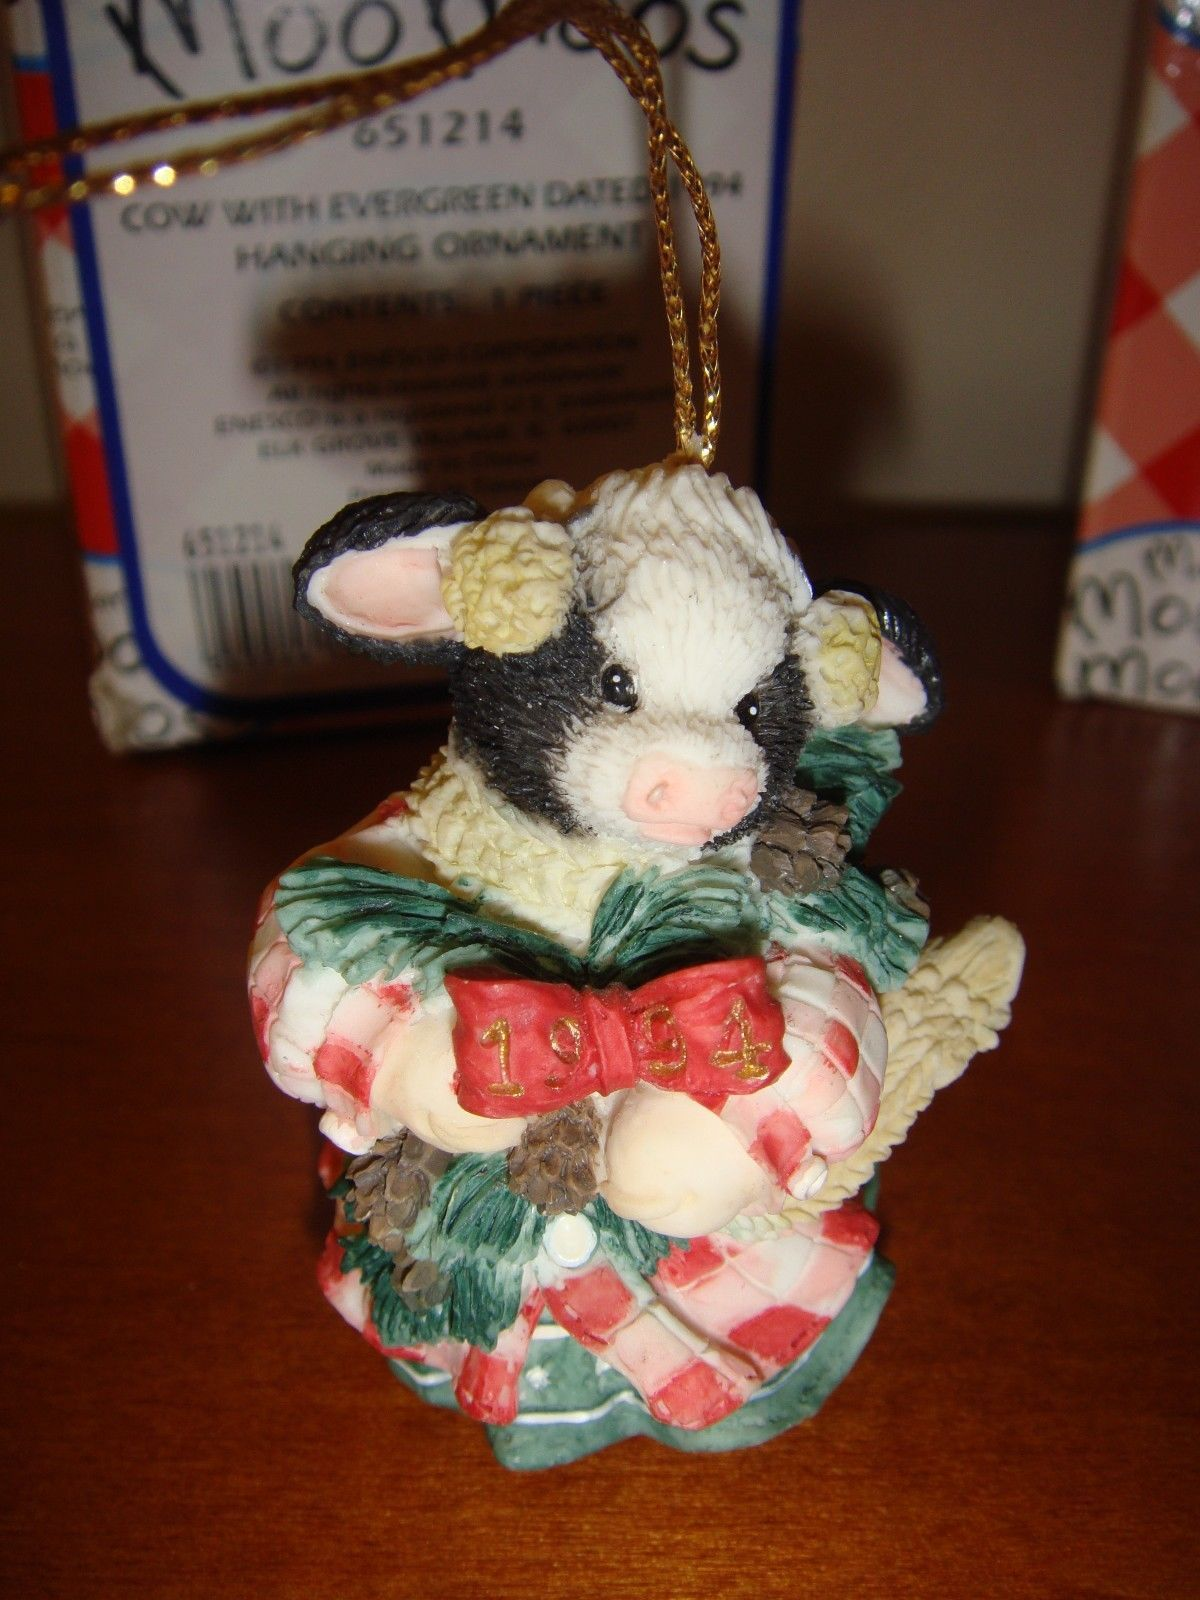 Mary's Moo Moos Cow With Evergreen Dated 1994 Ornament, 651214